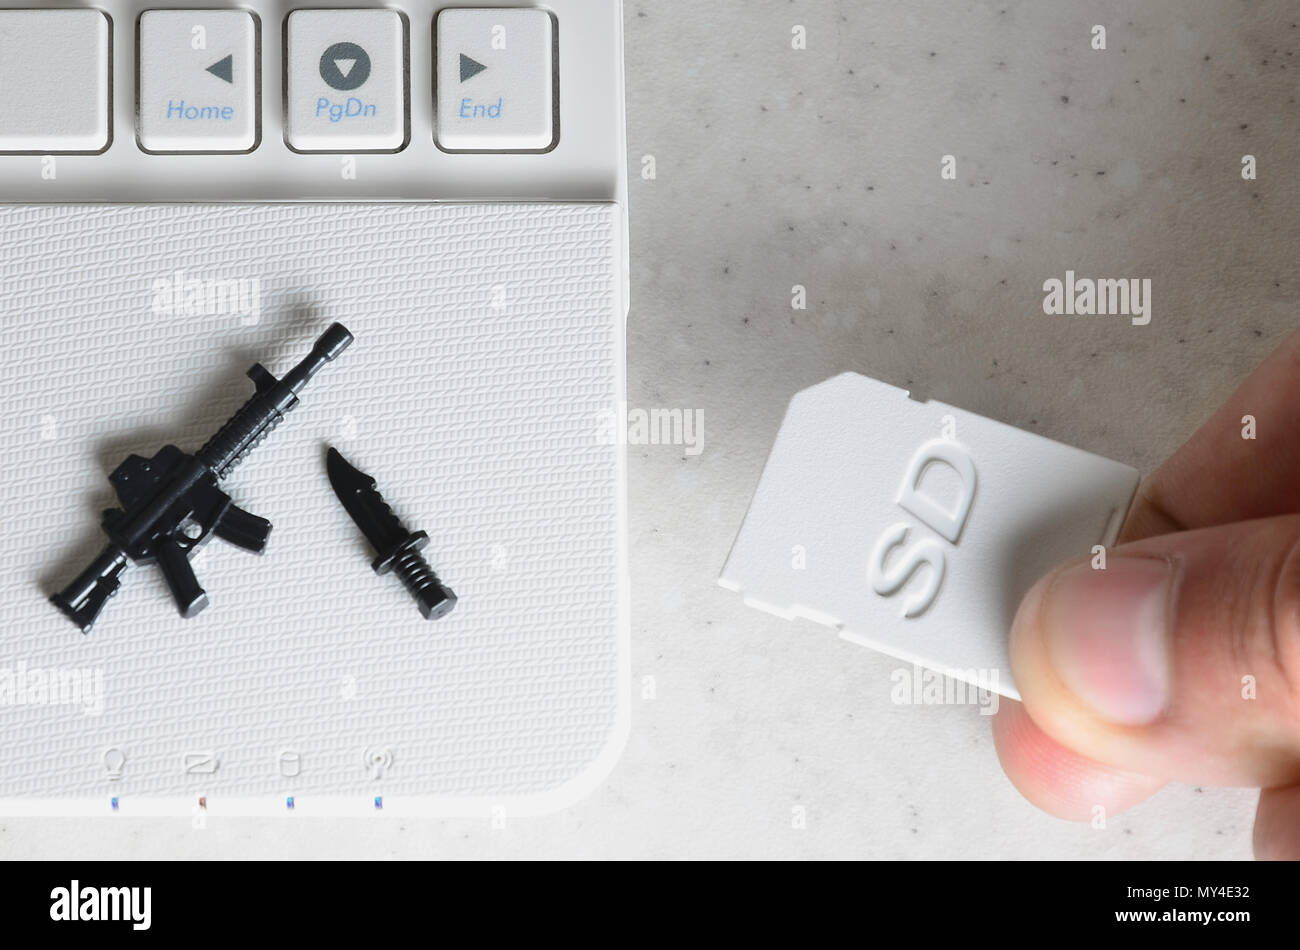 A hand inserts a compact SD card into the slot of a netbook, on which lie a miniature knife and gun. The concept of information warfare, journalistic  - Stock Image